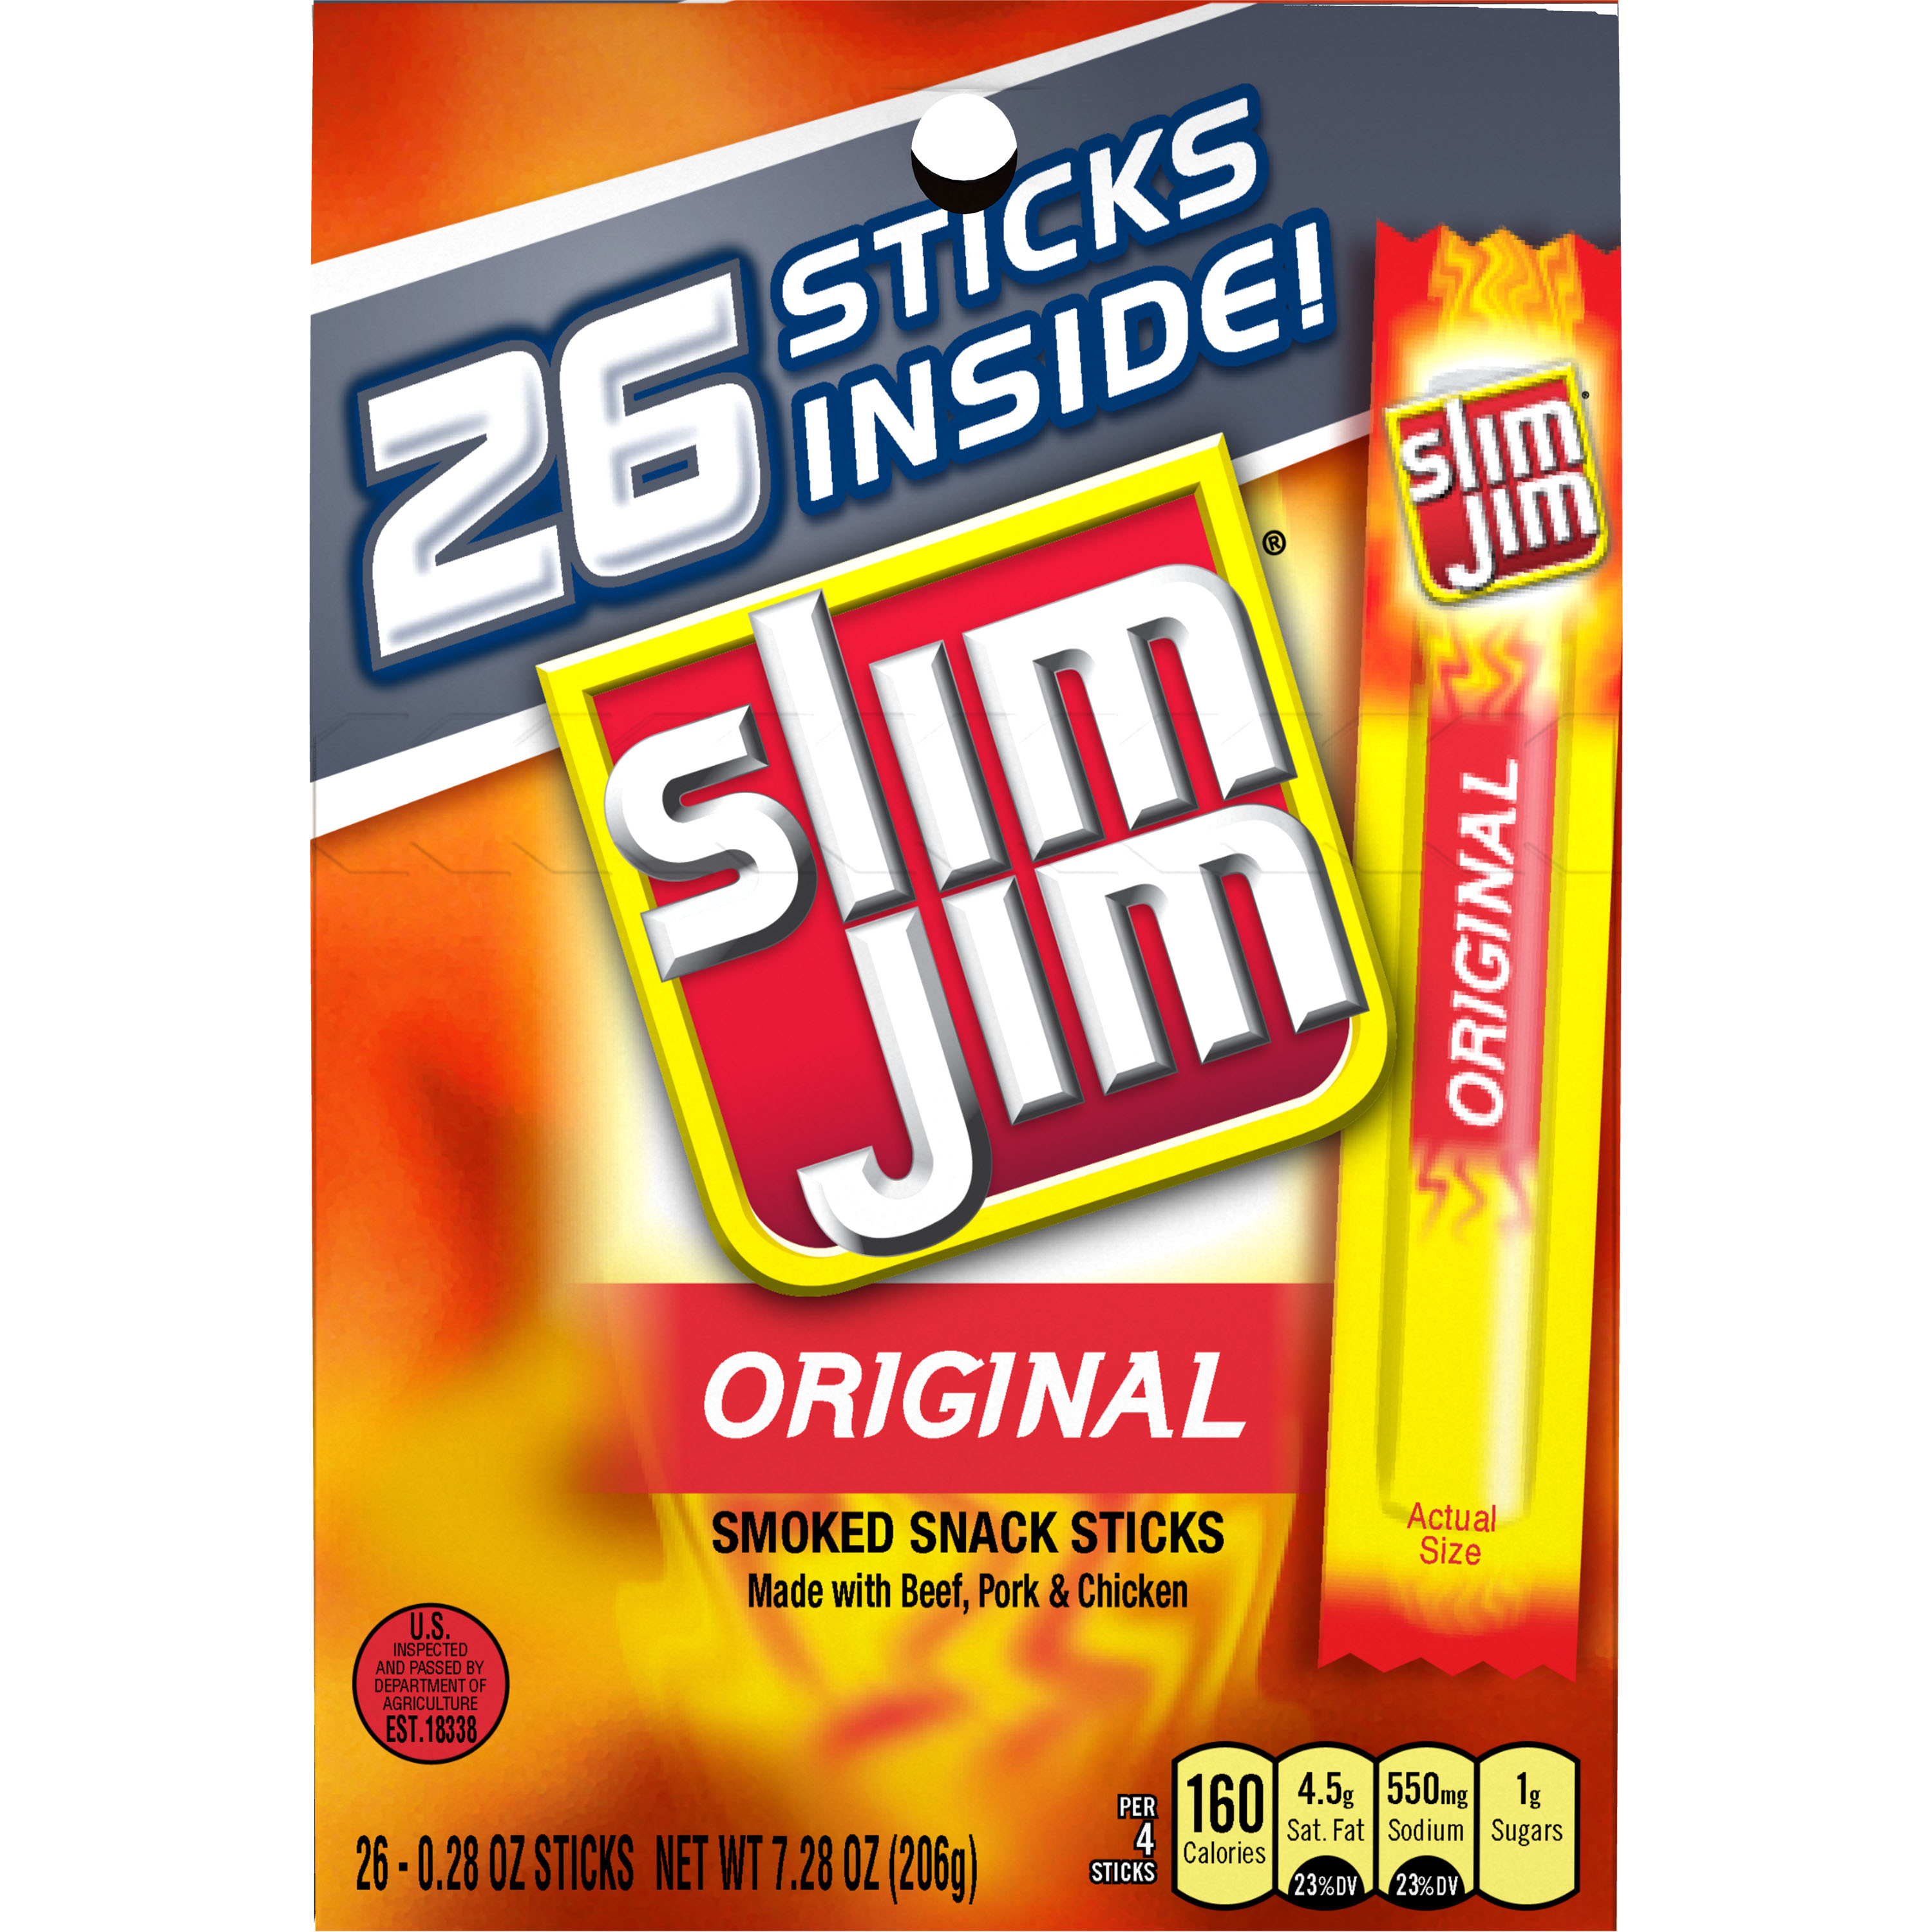 Slim Jim Original Smoked Snack Sticks, 0.28 oz, 26 ct